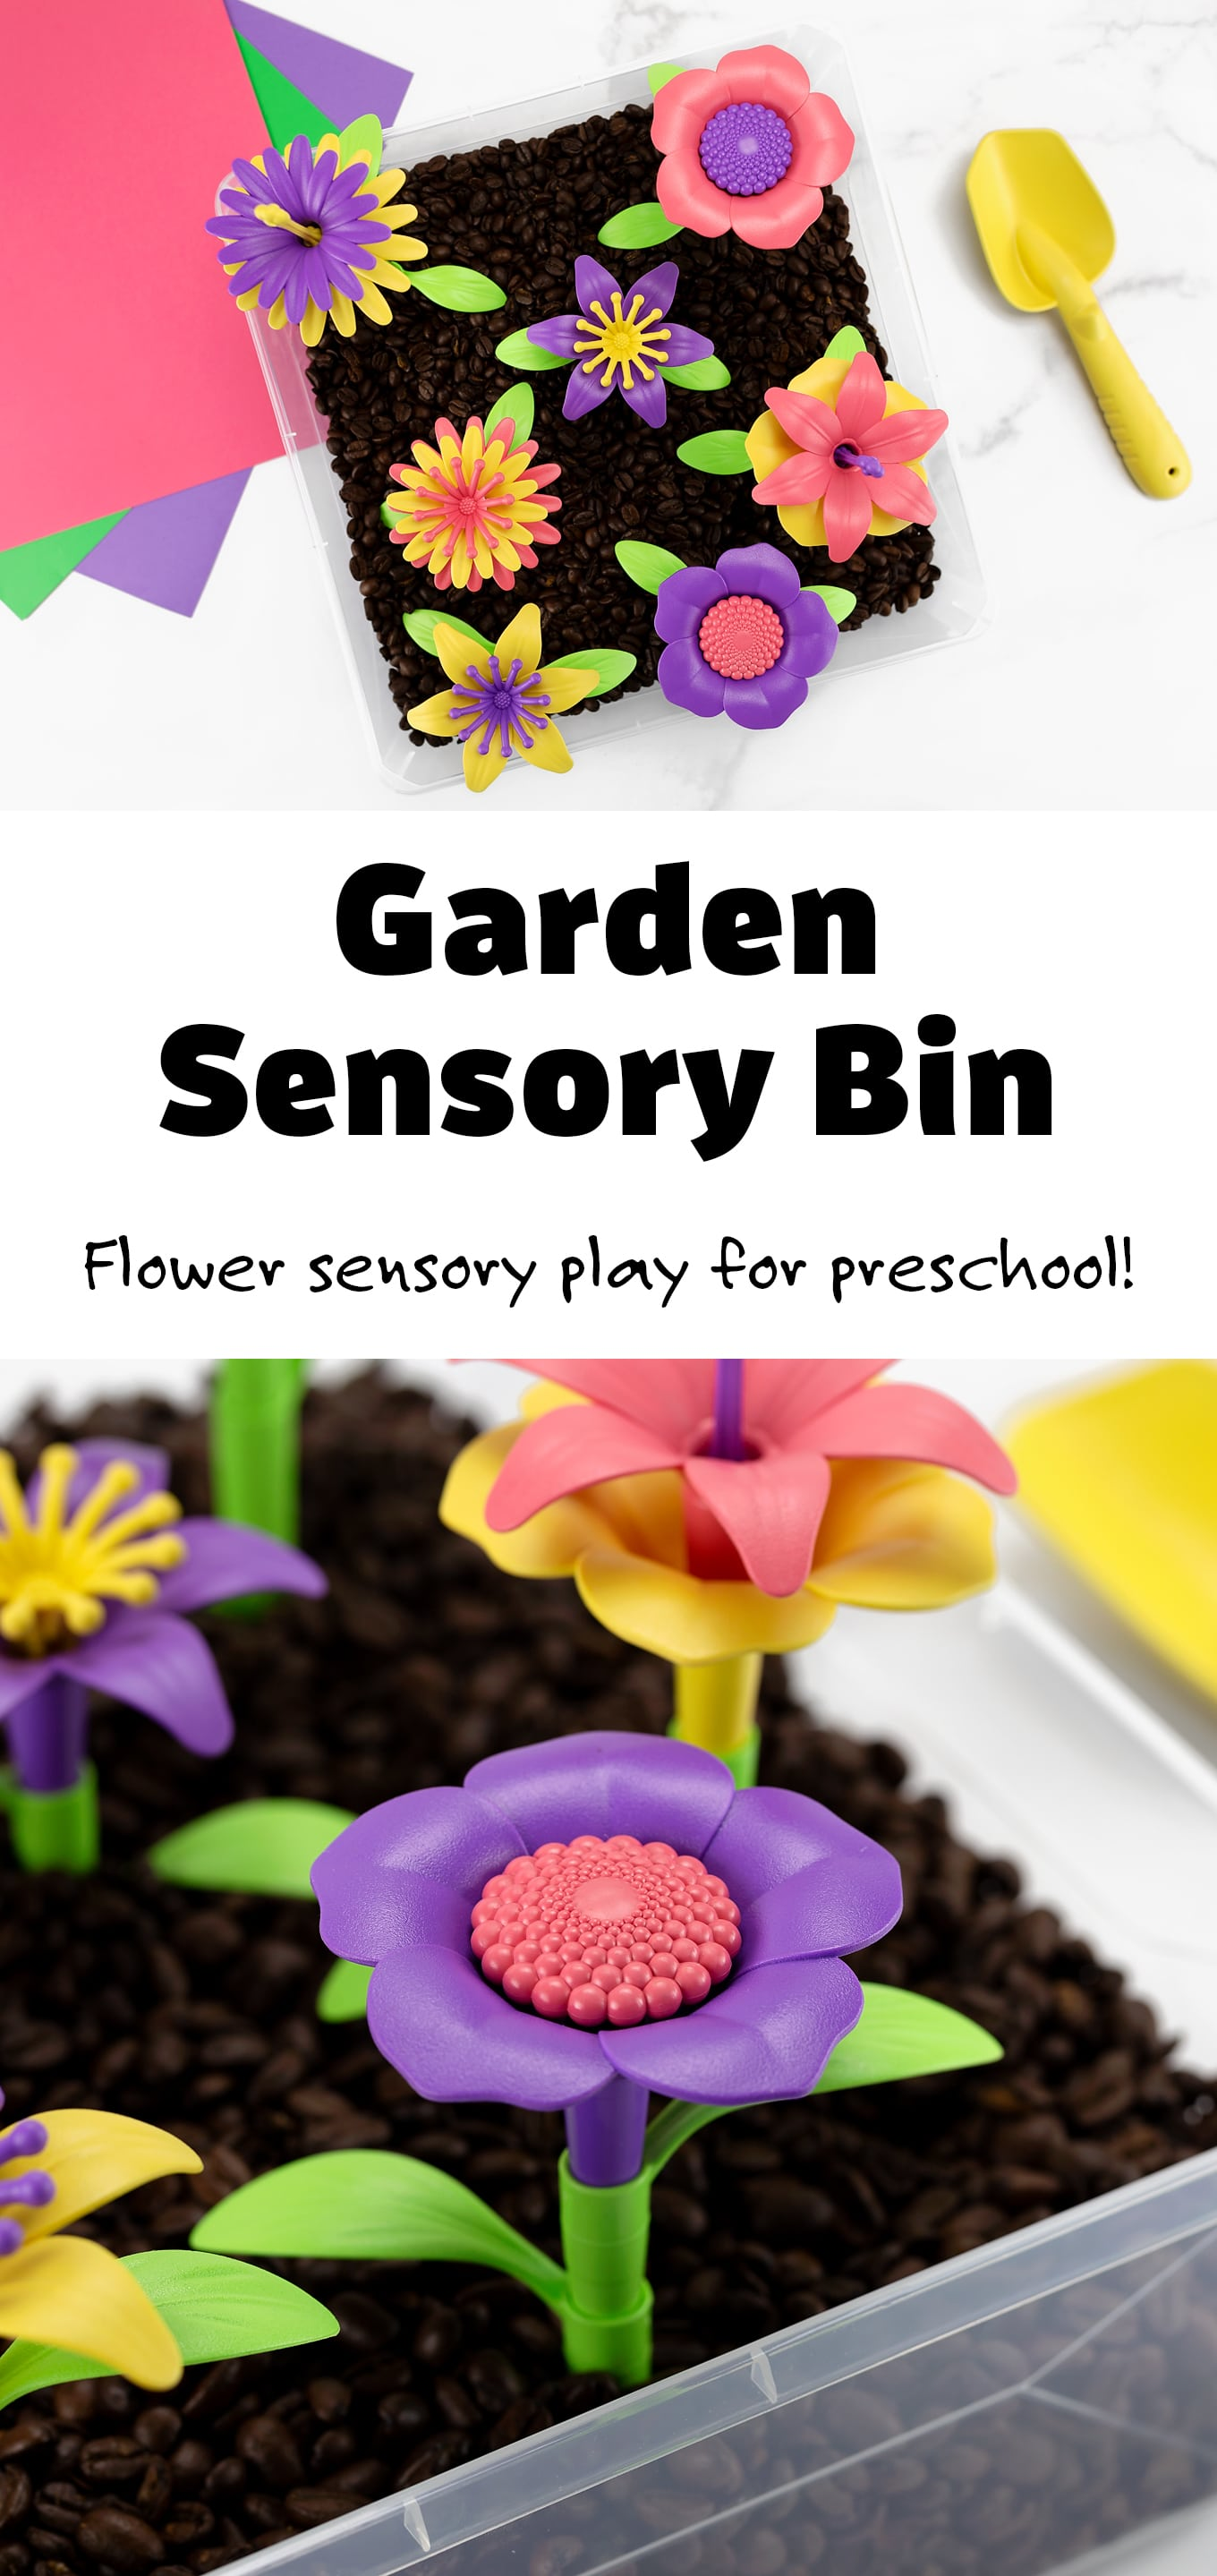 Let's dig into a garden sensory bin for some hands-on play, learning, and fun! This flower sensory bin is a great introduction for toddlers and preschoolers to explore planting and tending to a garden, all while learning about flowers. Turn it into a fun summer unit with some garden picture books, flower crafts, and nature walks. #gardensensorybin #flowersensorybin #kids #sensorybin via @firefliesandmudpies